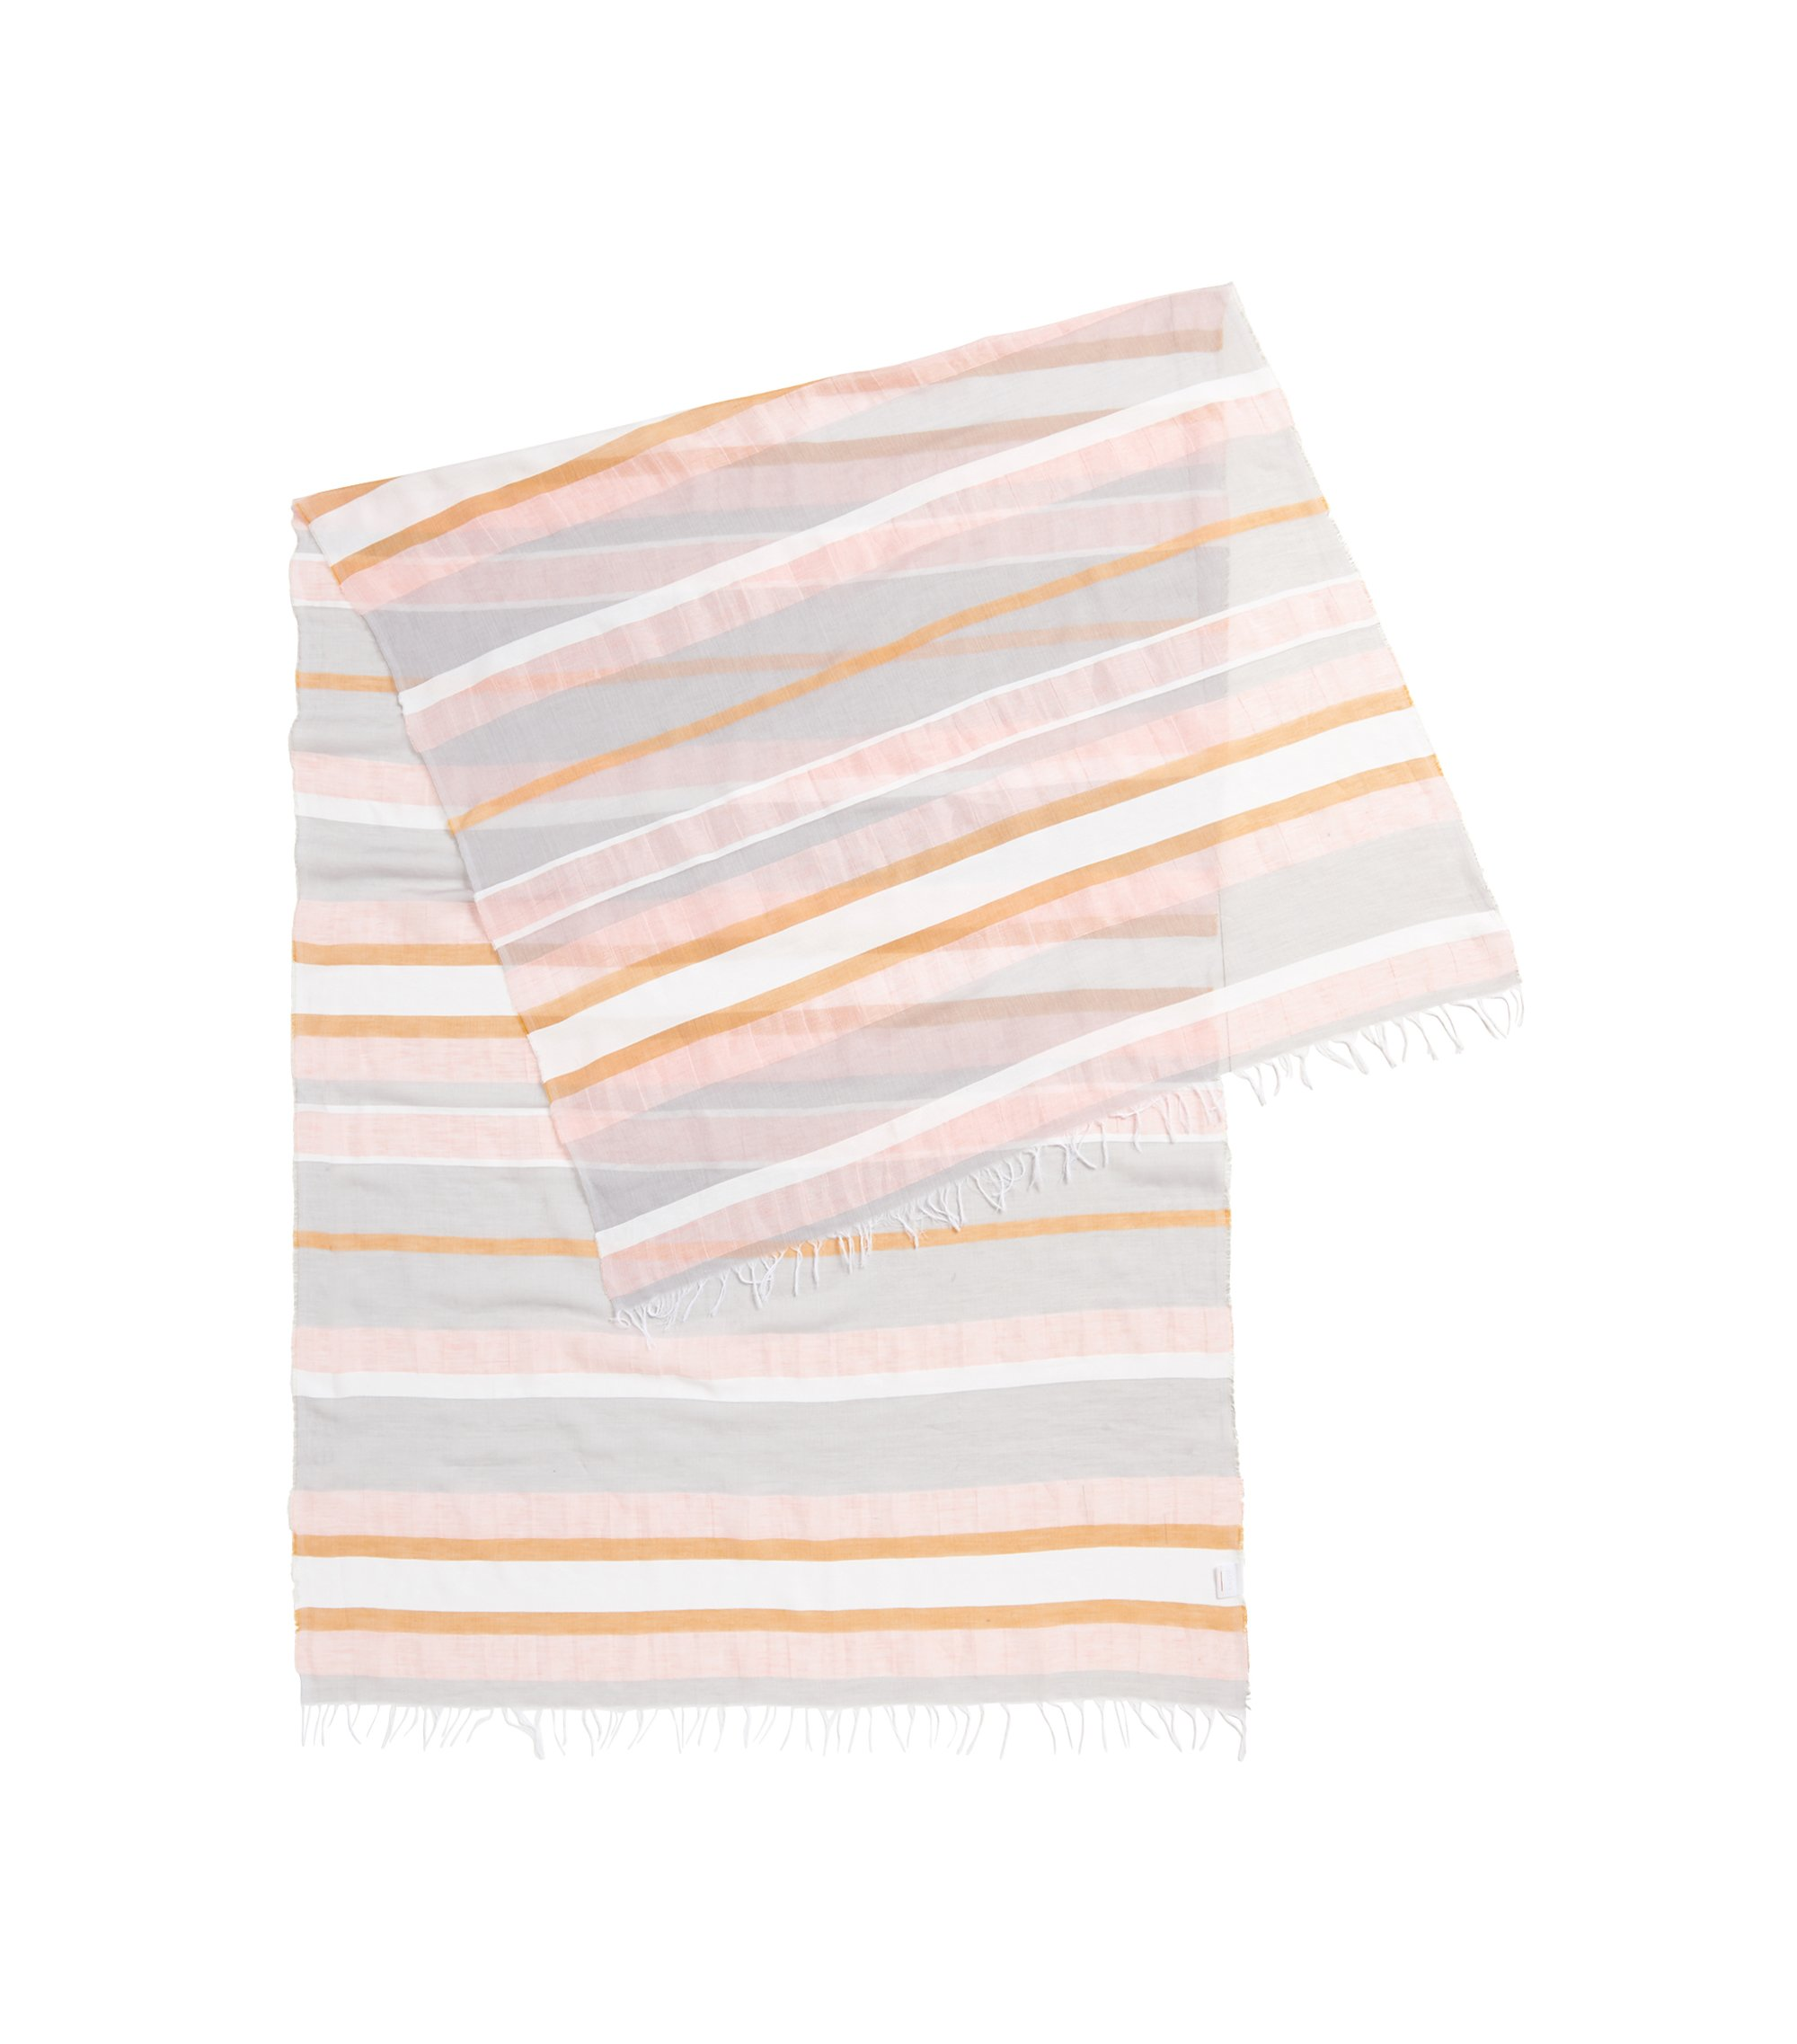 Striped scarf in a lightweight cotton blend, Silver